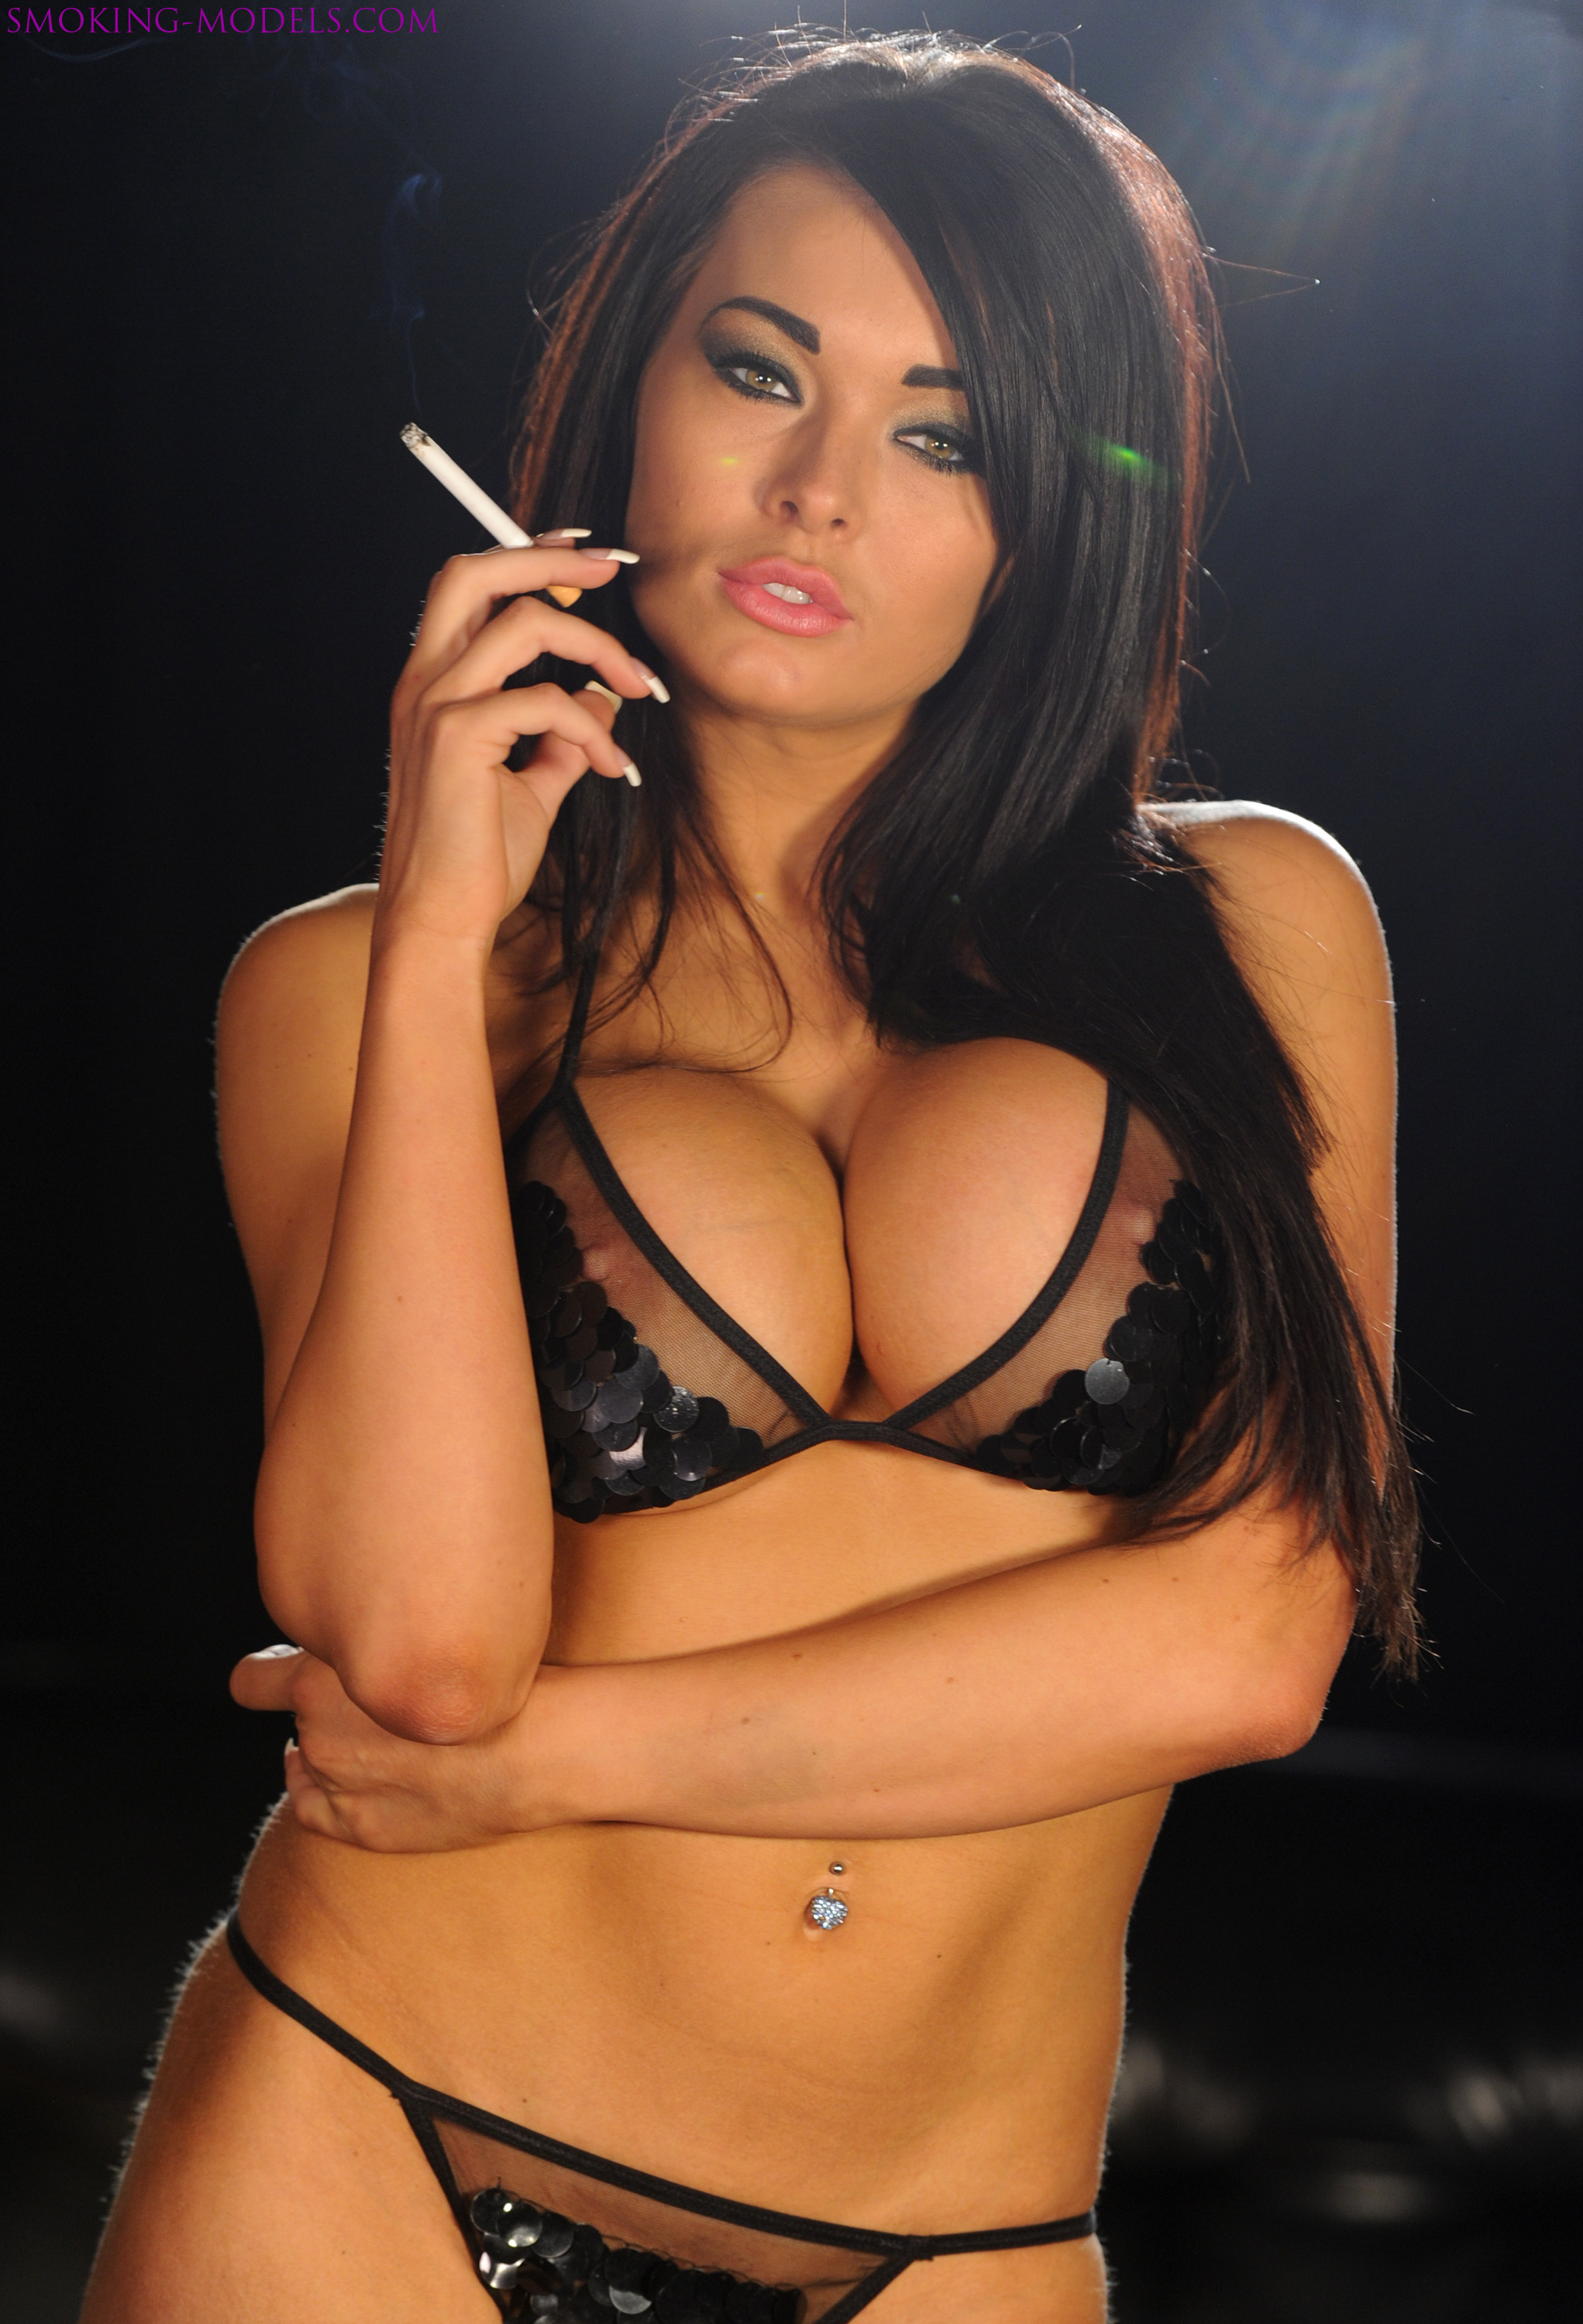 Charley atwell smoking strong marlboro reds in naughty lingerie